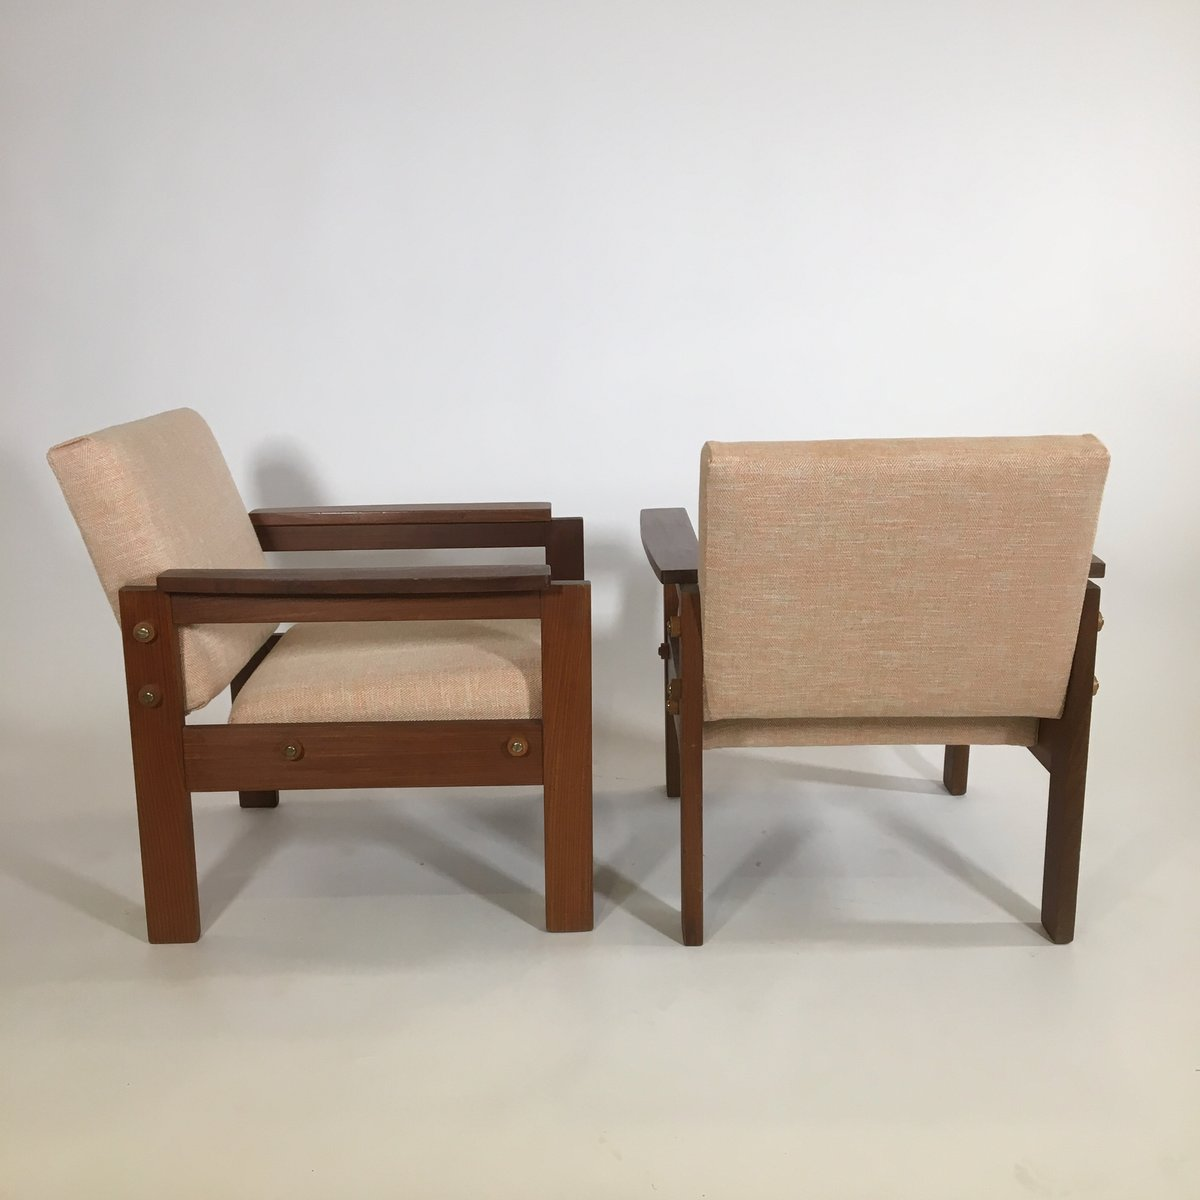 Teak armchairs 1950s set of 2 for sale at pamono for 2 armchairs for sale